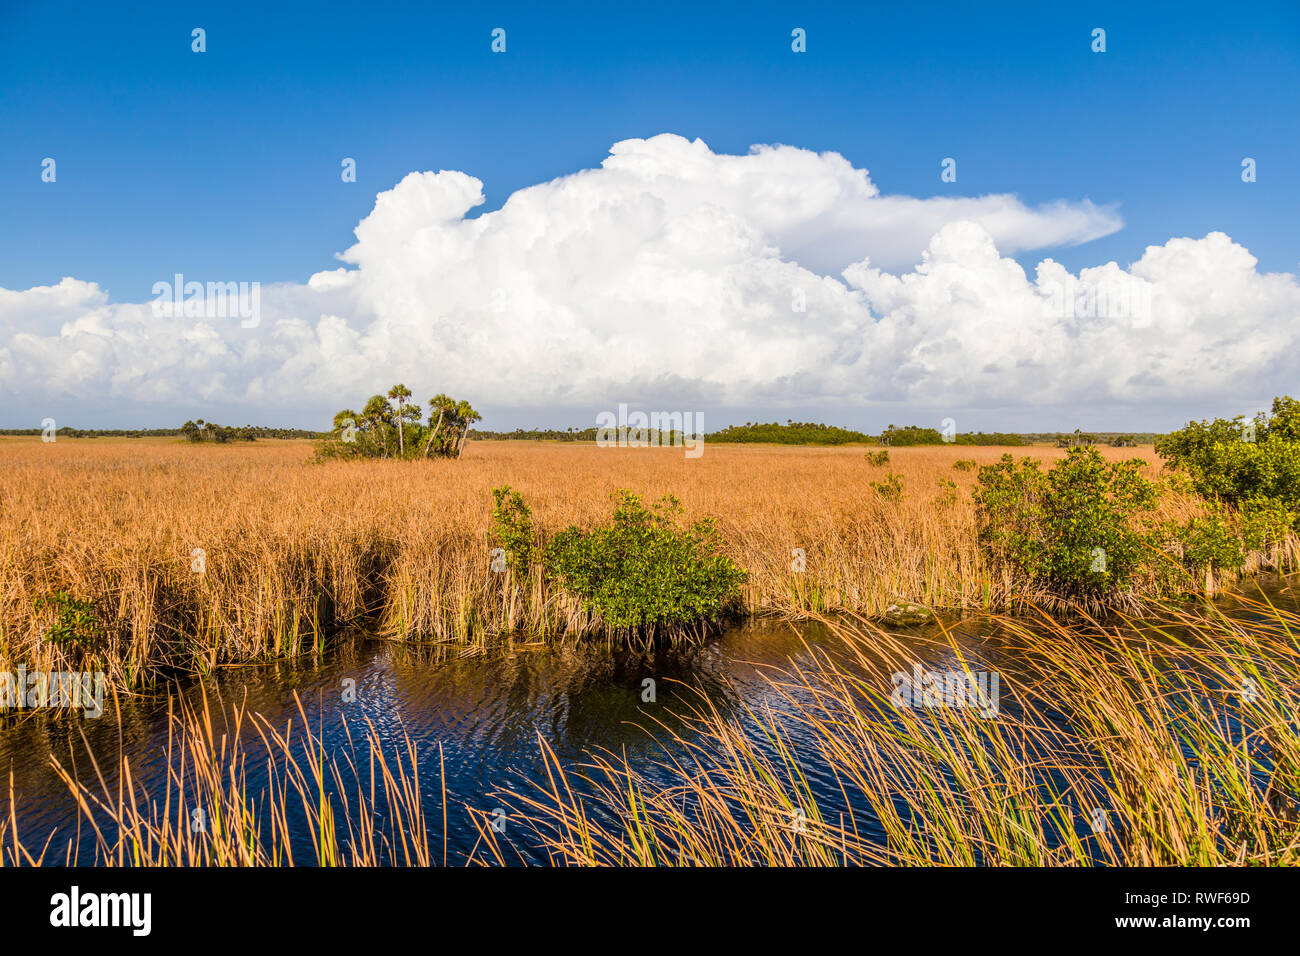 River of grass with Big white clouds in blue sky along Tamiami Trail in Big Cypress National Preserve in southwest Florida Stock Photo